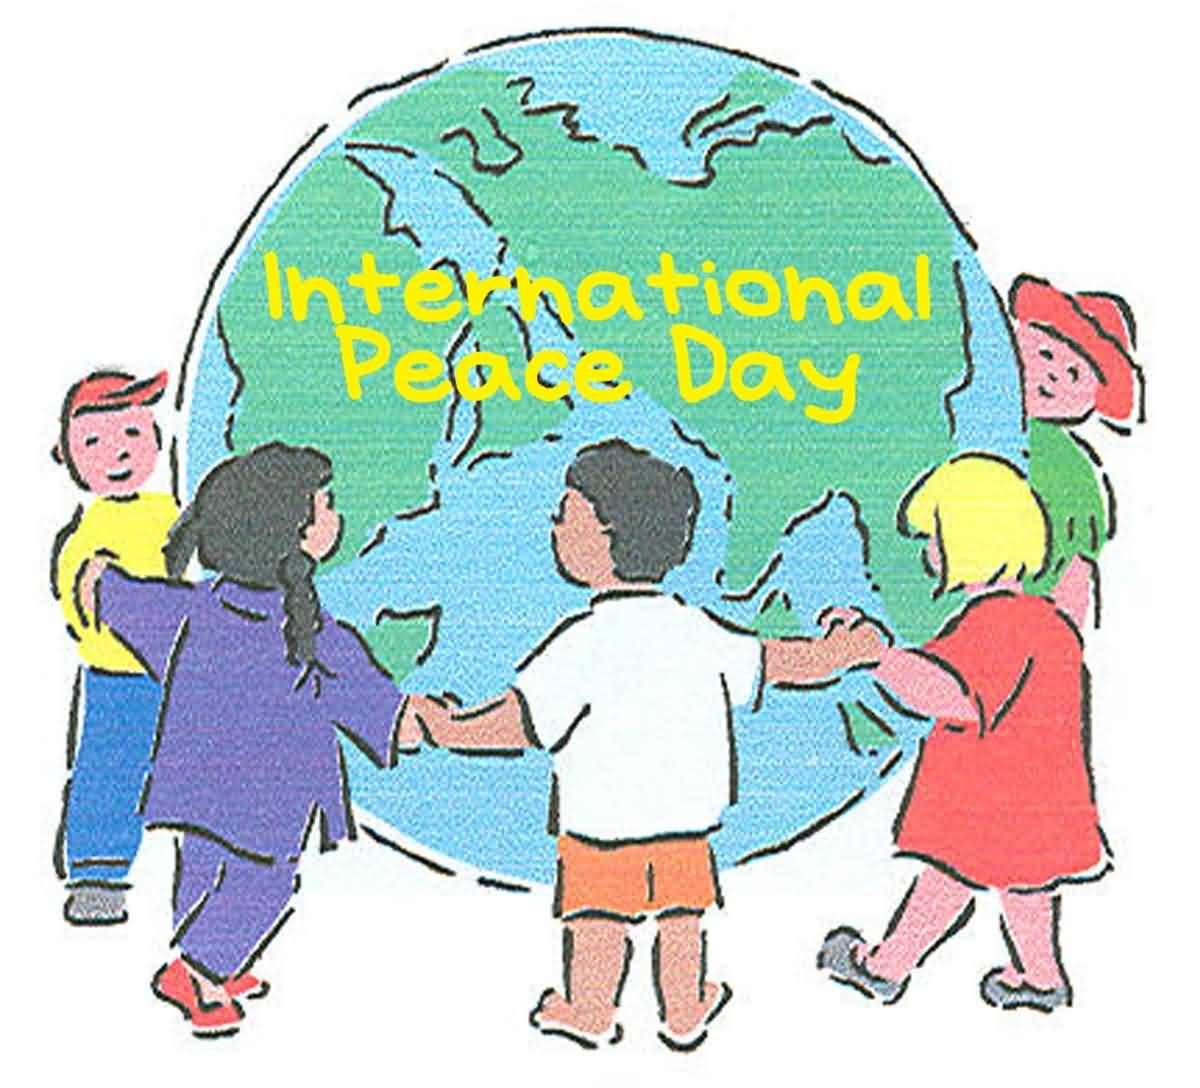 143-International Peace Day Wishes